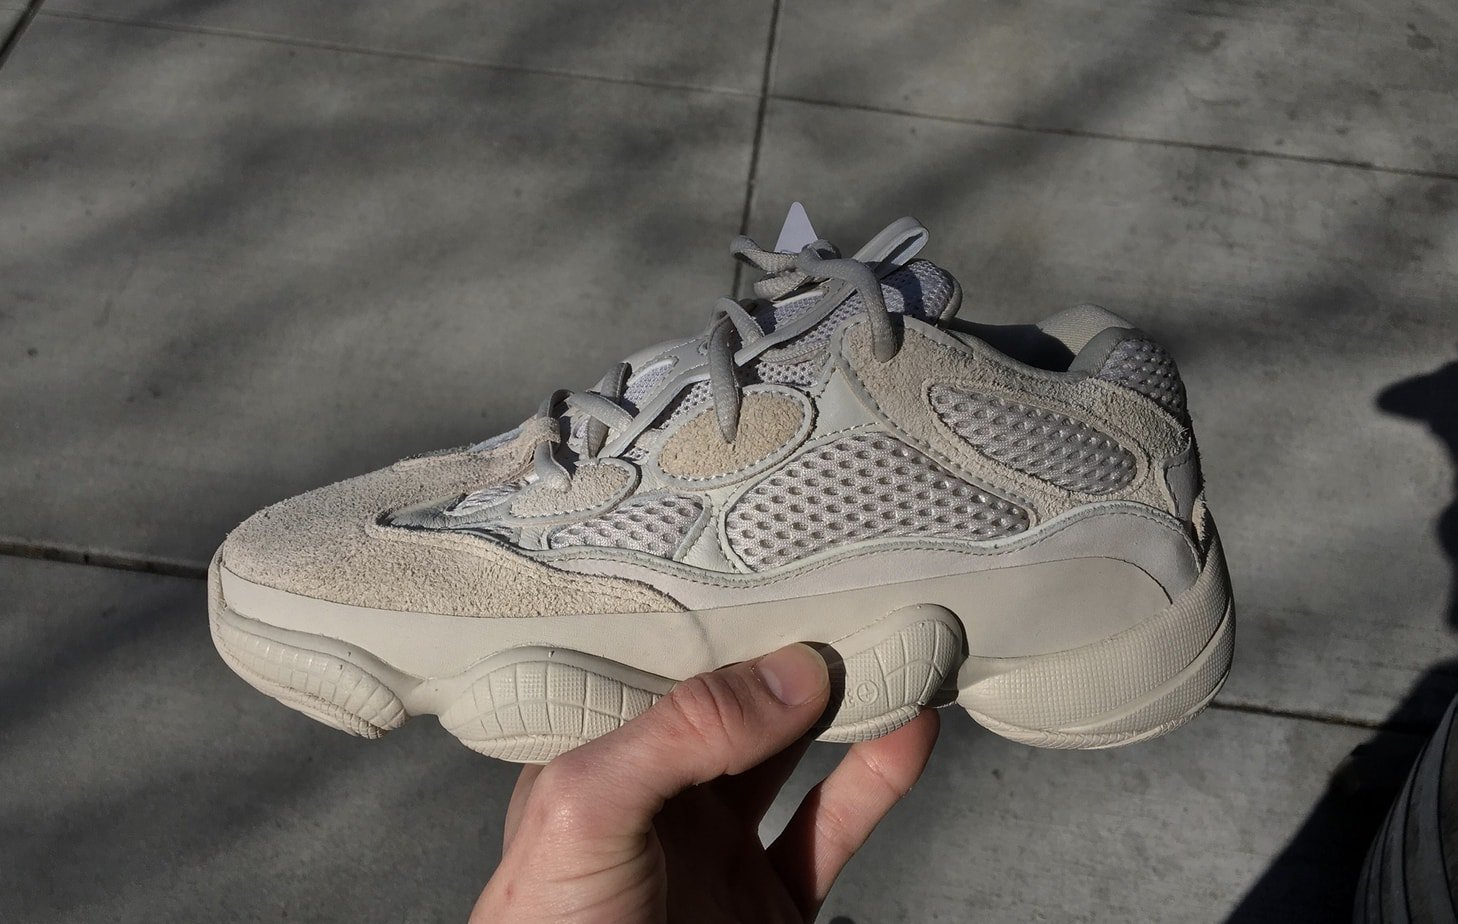 0943f1894c9131 Kanye West and adidas are slowly but surely rolling out a new model. The  unique adidas Yeezy 500 silhouette is first scheduled to ship to consumers  in March ...